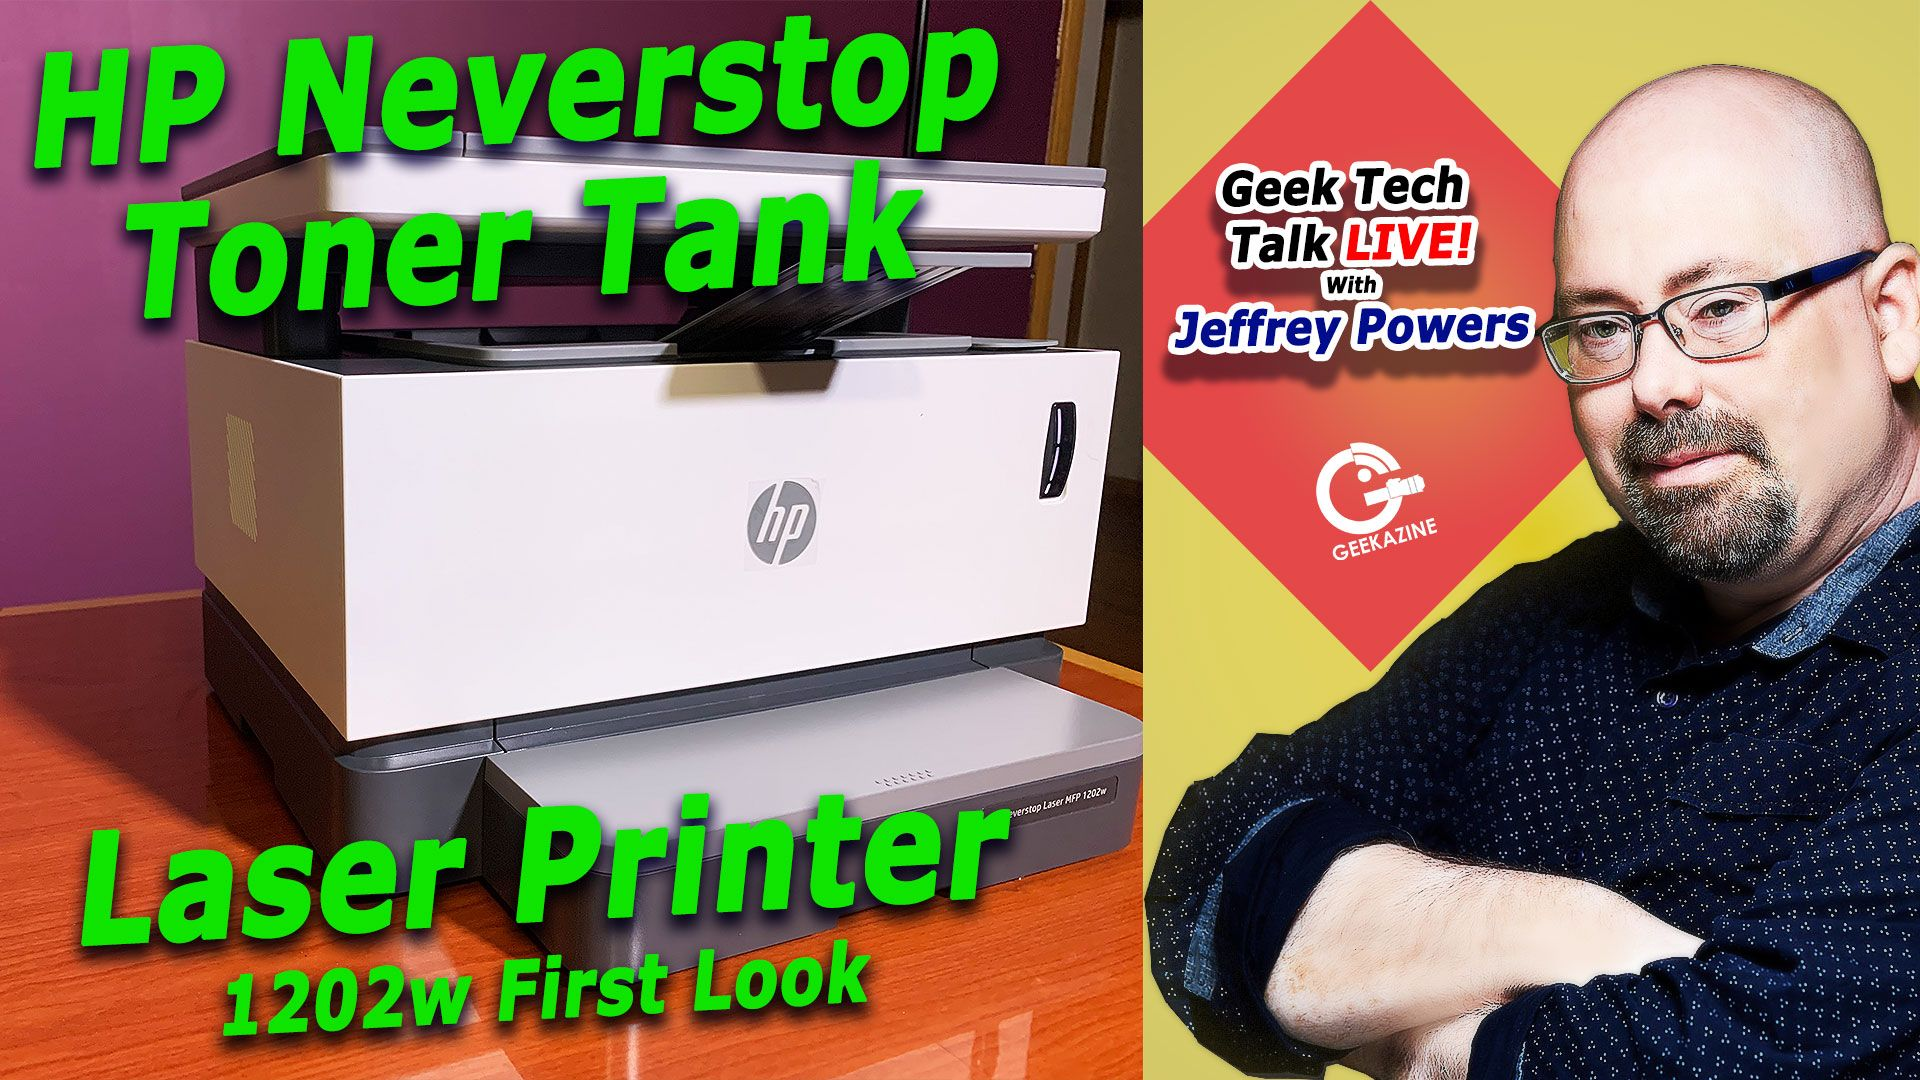 Hp Neverstop 1202w With Low Cost Refill Toner For Smb Review Laser Printer Smb Toner